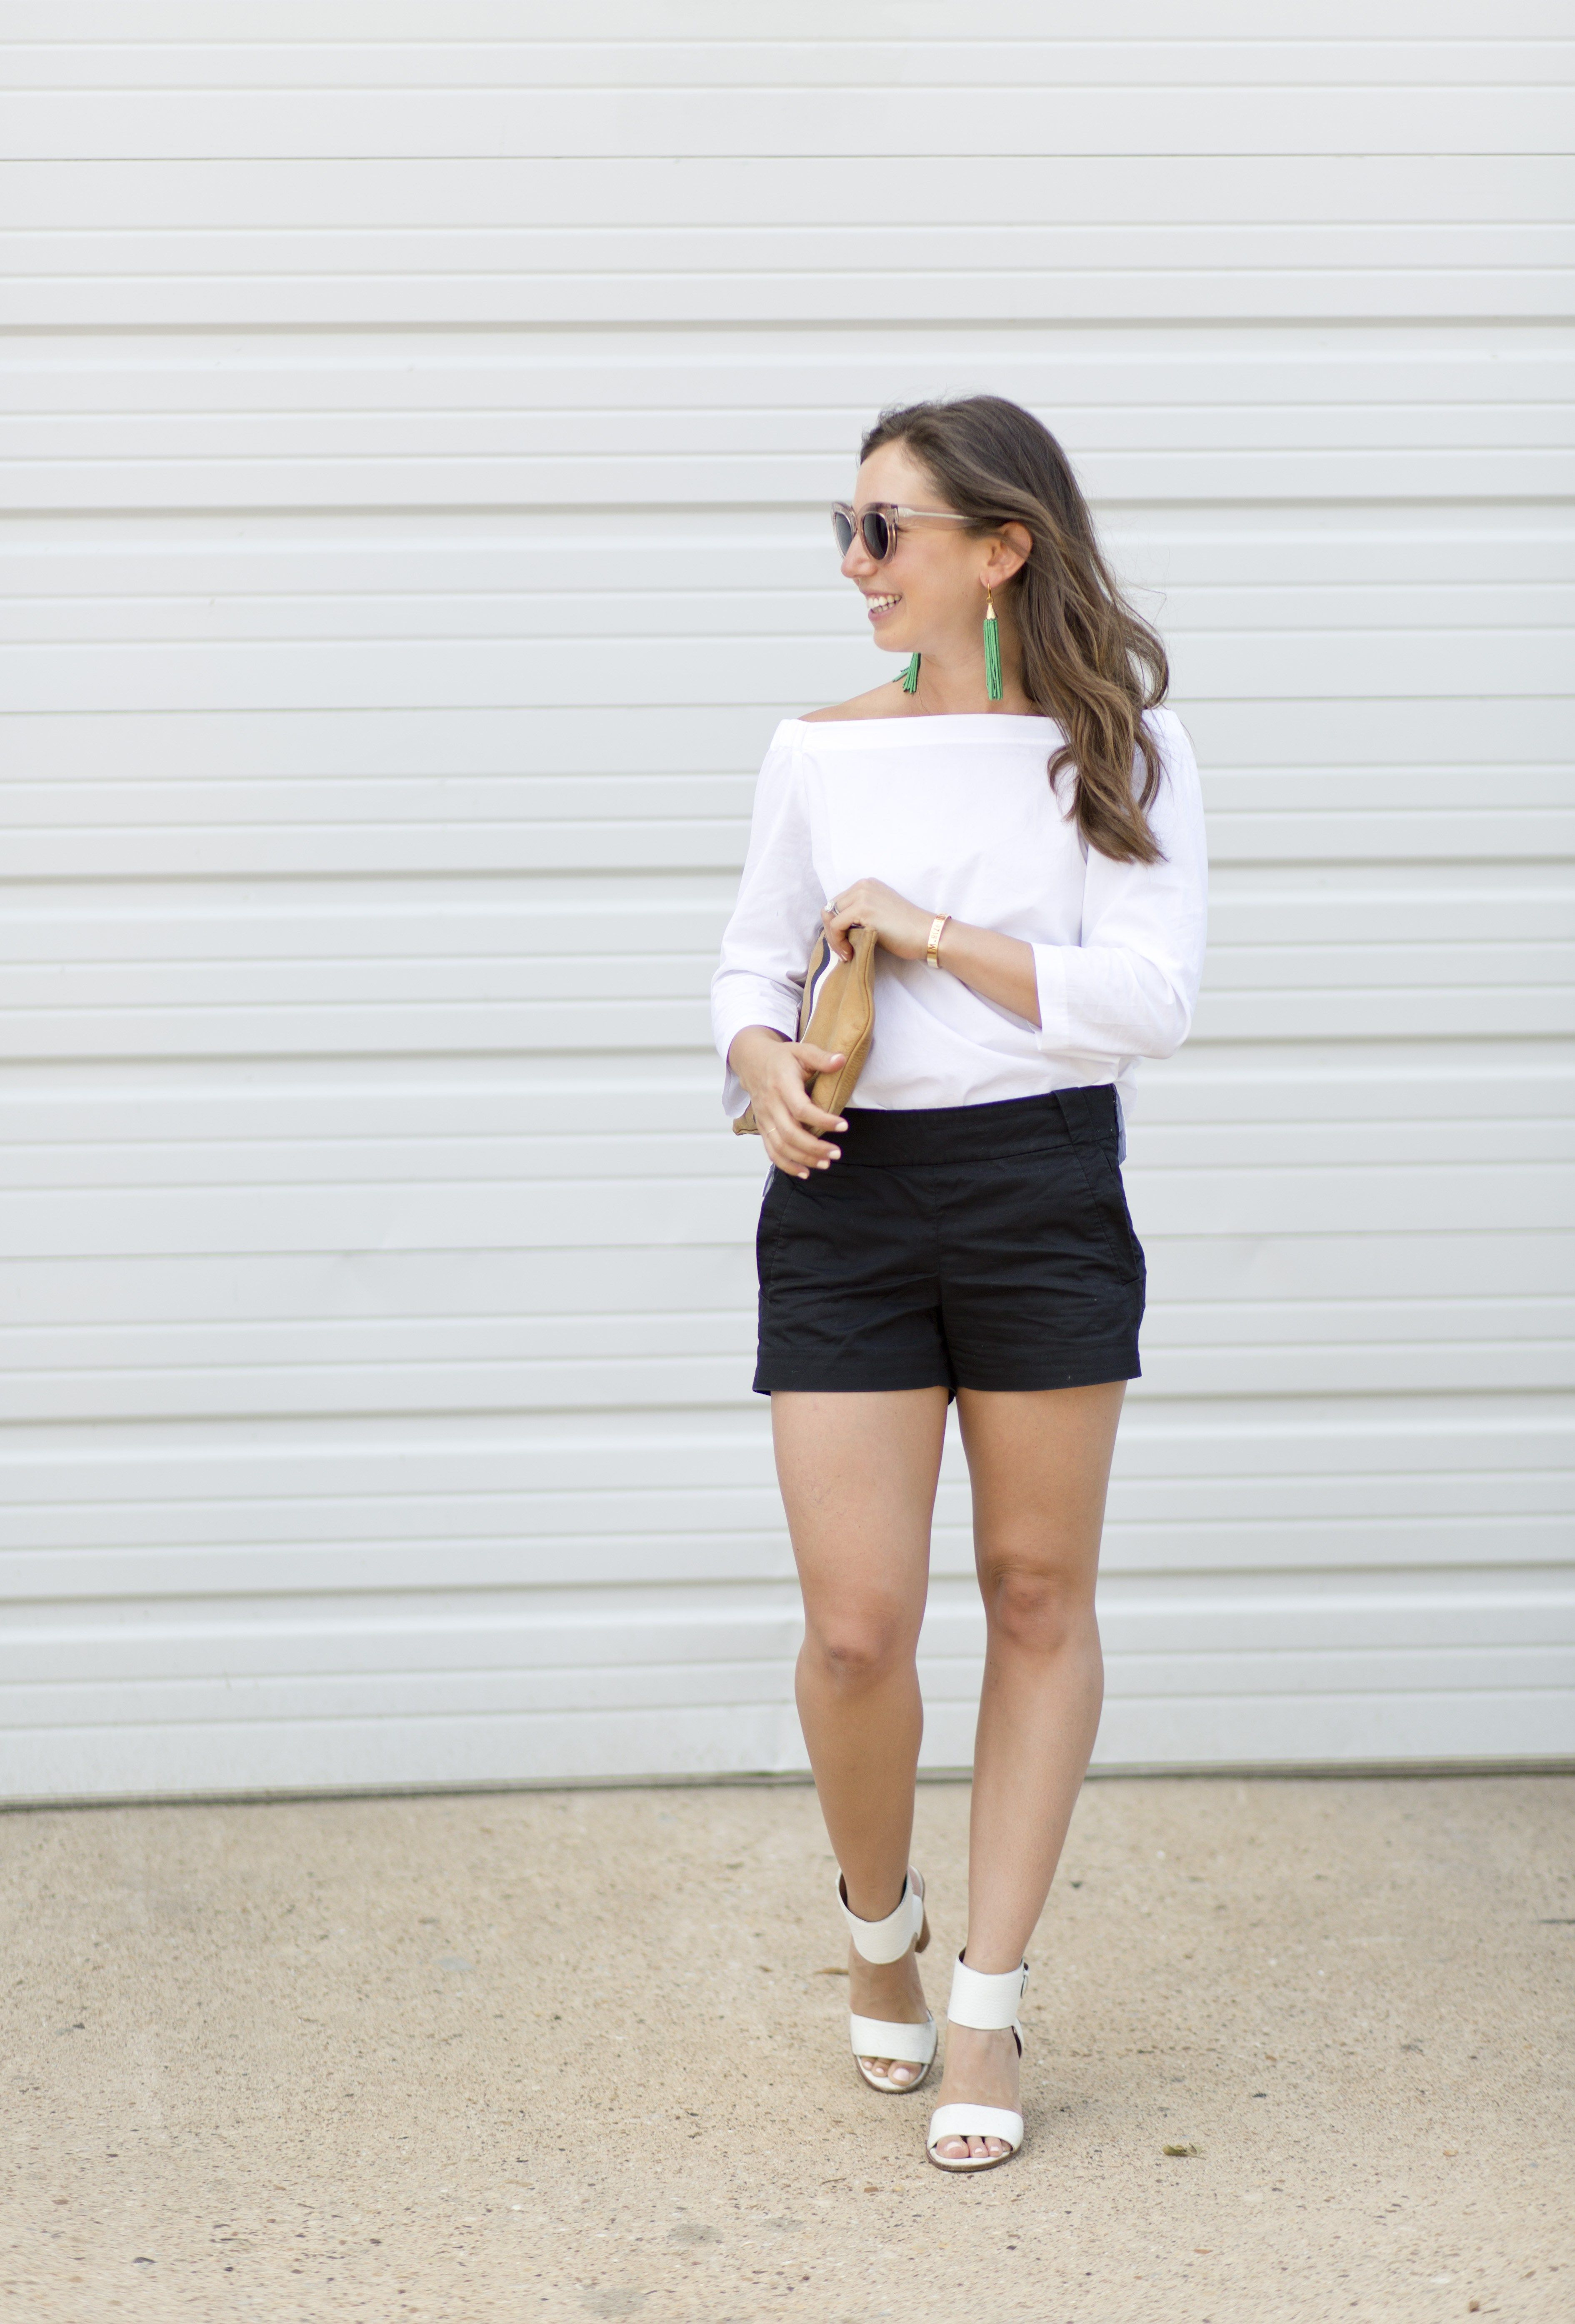 A story about two scars and a classic black and white look featuring a Theory Off-The-Shoulder Top and Black J.Crew Shorts.